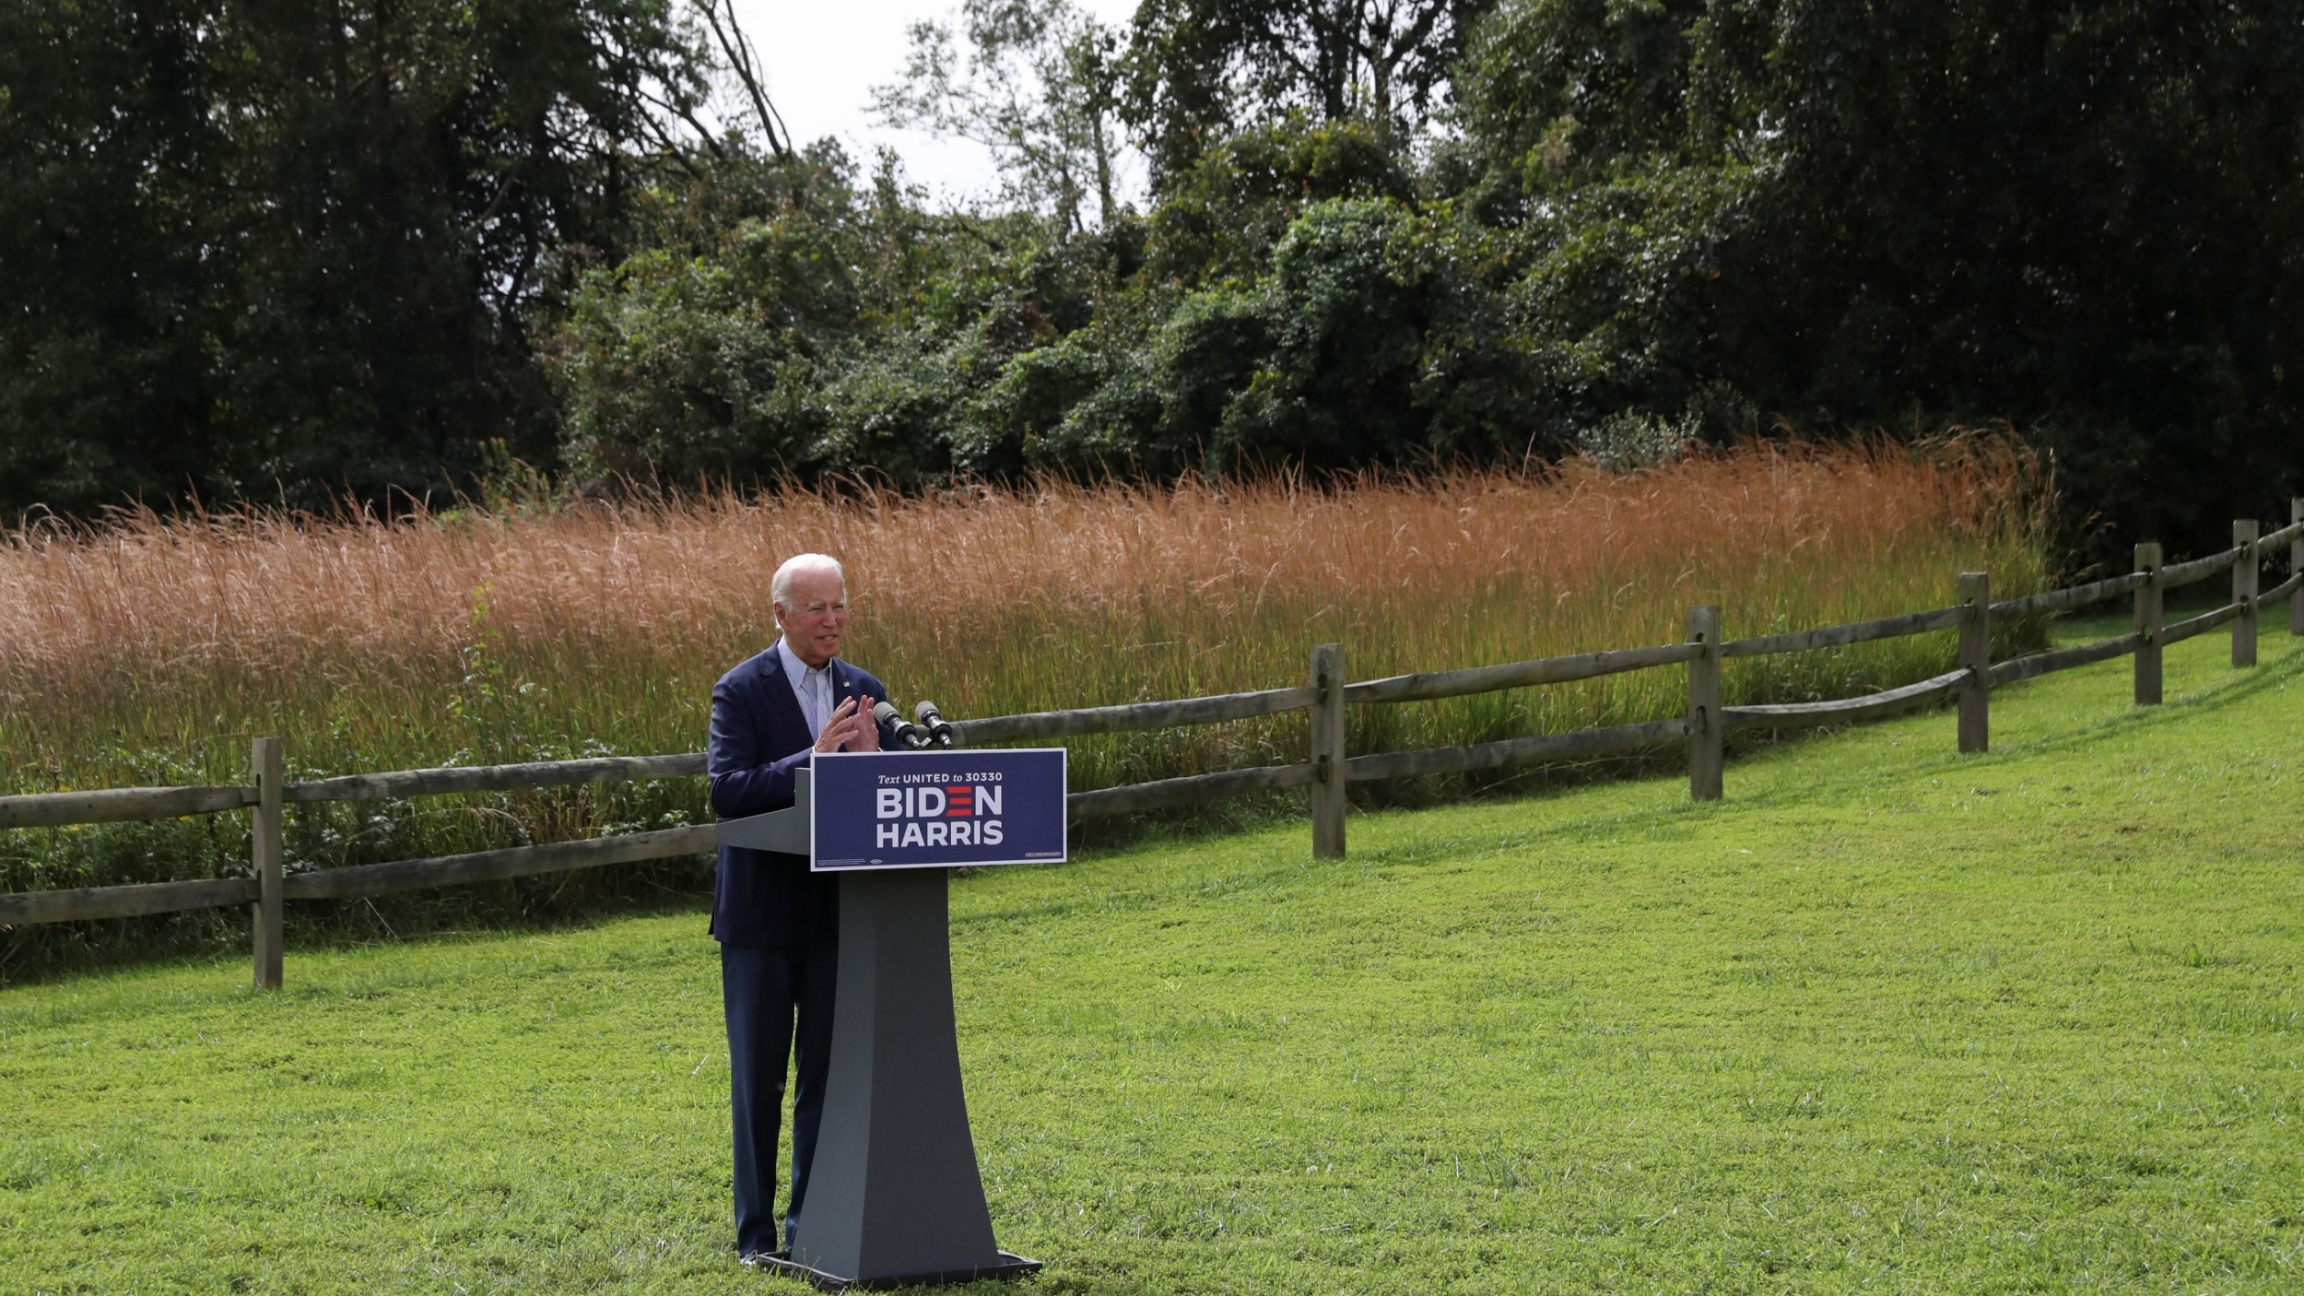 Standing in a grassy field, Joe Biden speaks about climate change during a campaign event held outside the Delaware Museum of Natural History in Wilmington, Delaware, Sept. 14, 2020.